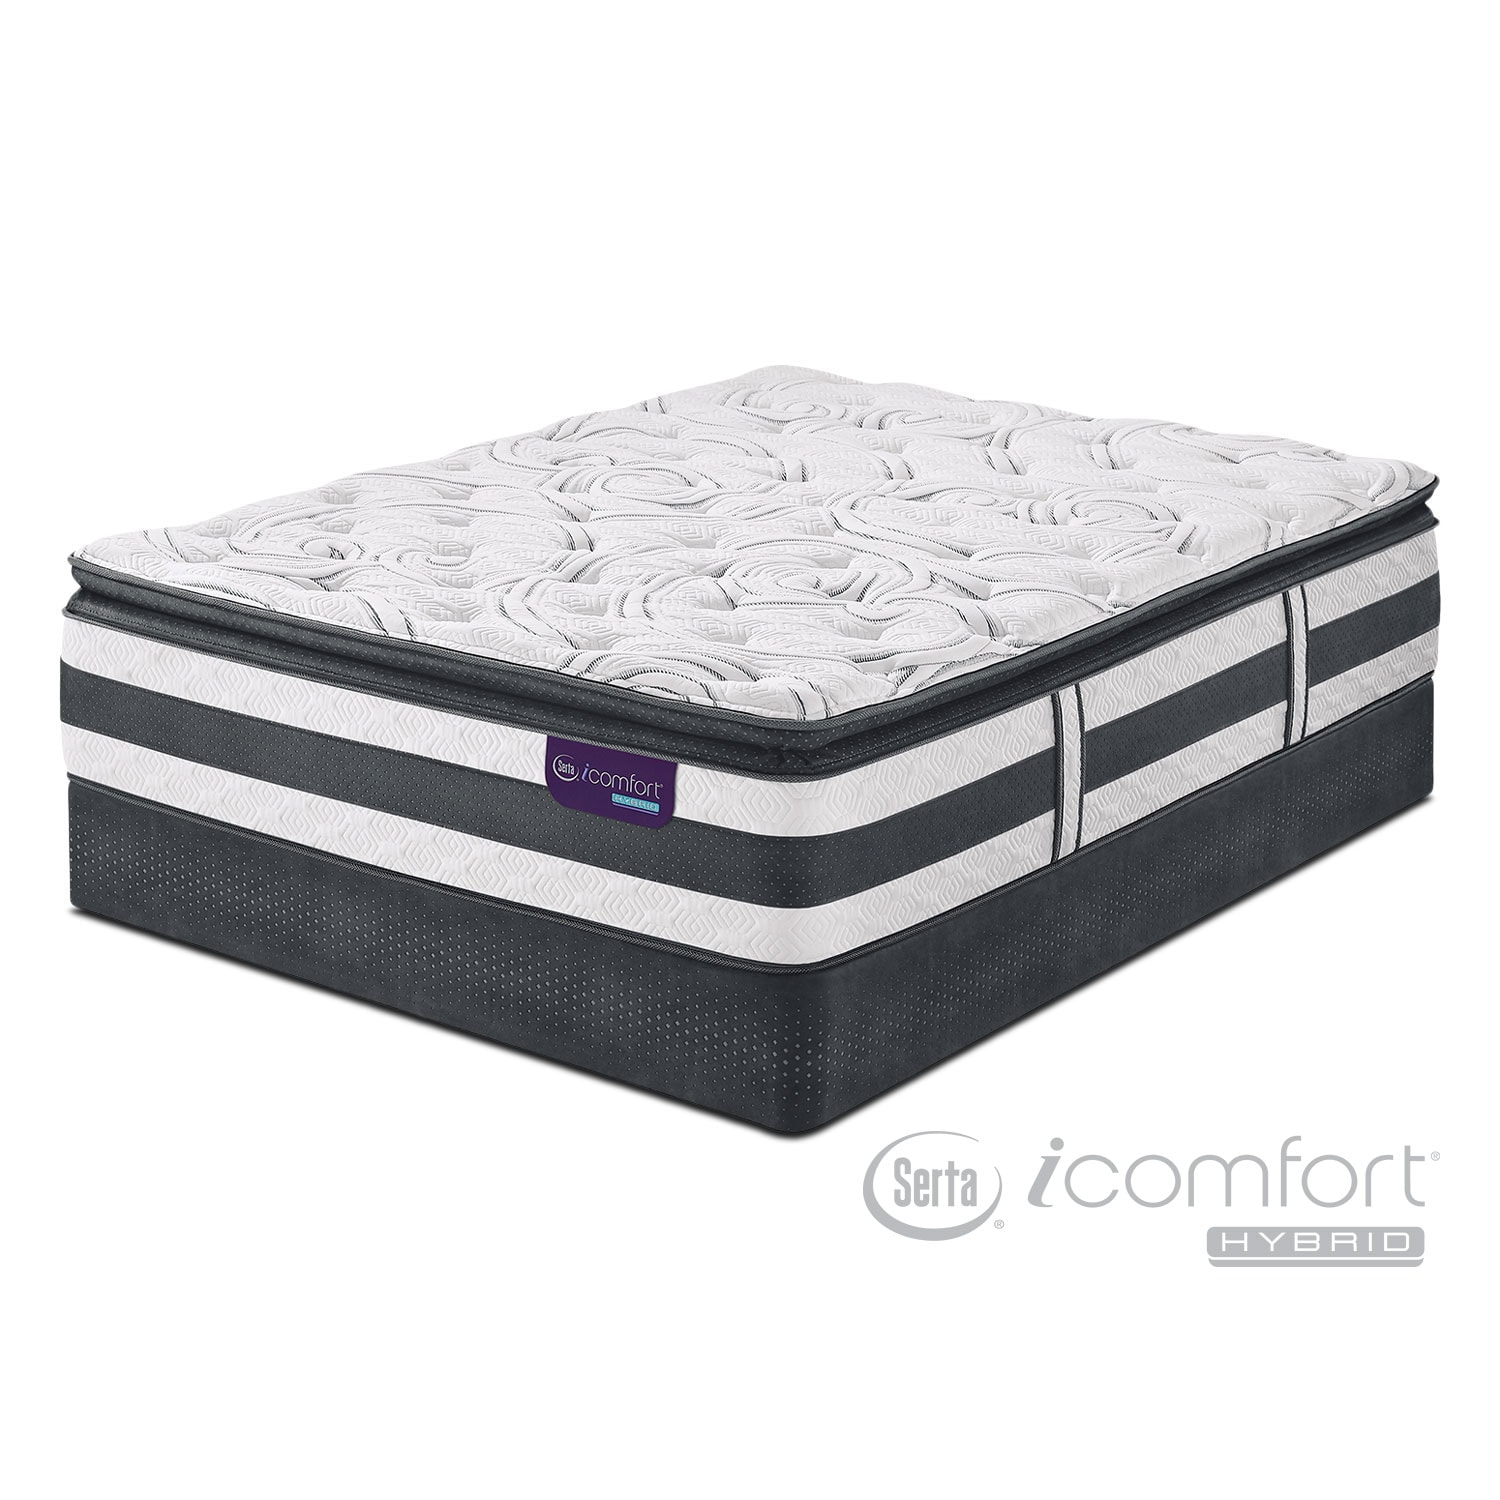 Mattresses and Bedding - Observer Twin XL Mattress/Foundation Set